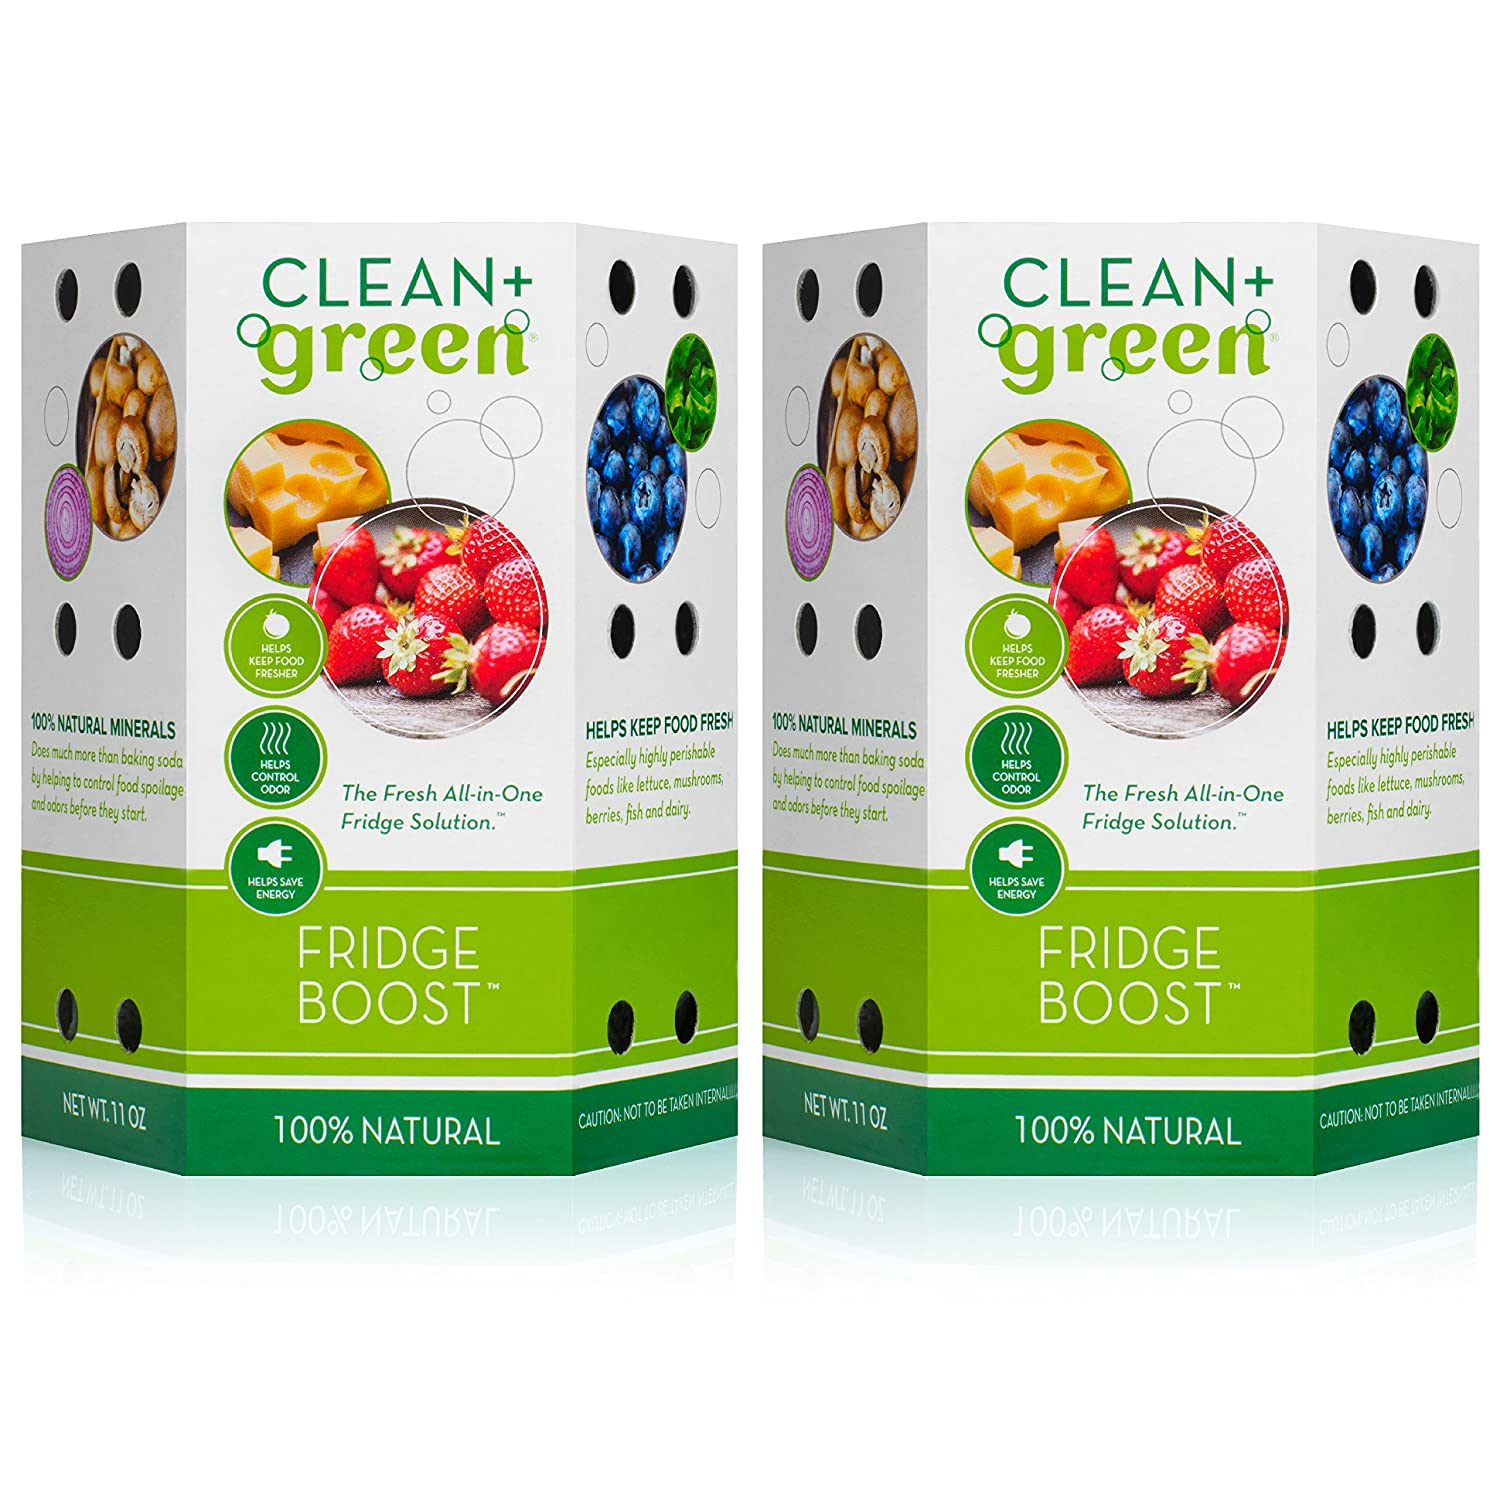 Clean+Green Fridge Boost Refrigerator and Freezer Deodorizer and Smell Remover Keeps Food Fresh Longer and Eliminate Odors- Baking Soda Alternative (2-Pack) - Refresh Every 90 Days